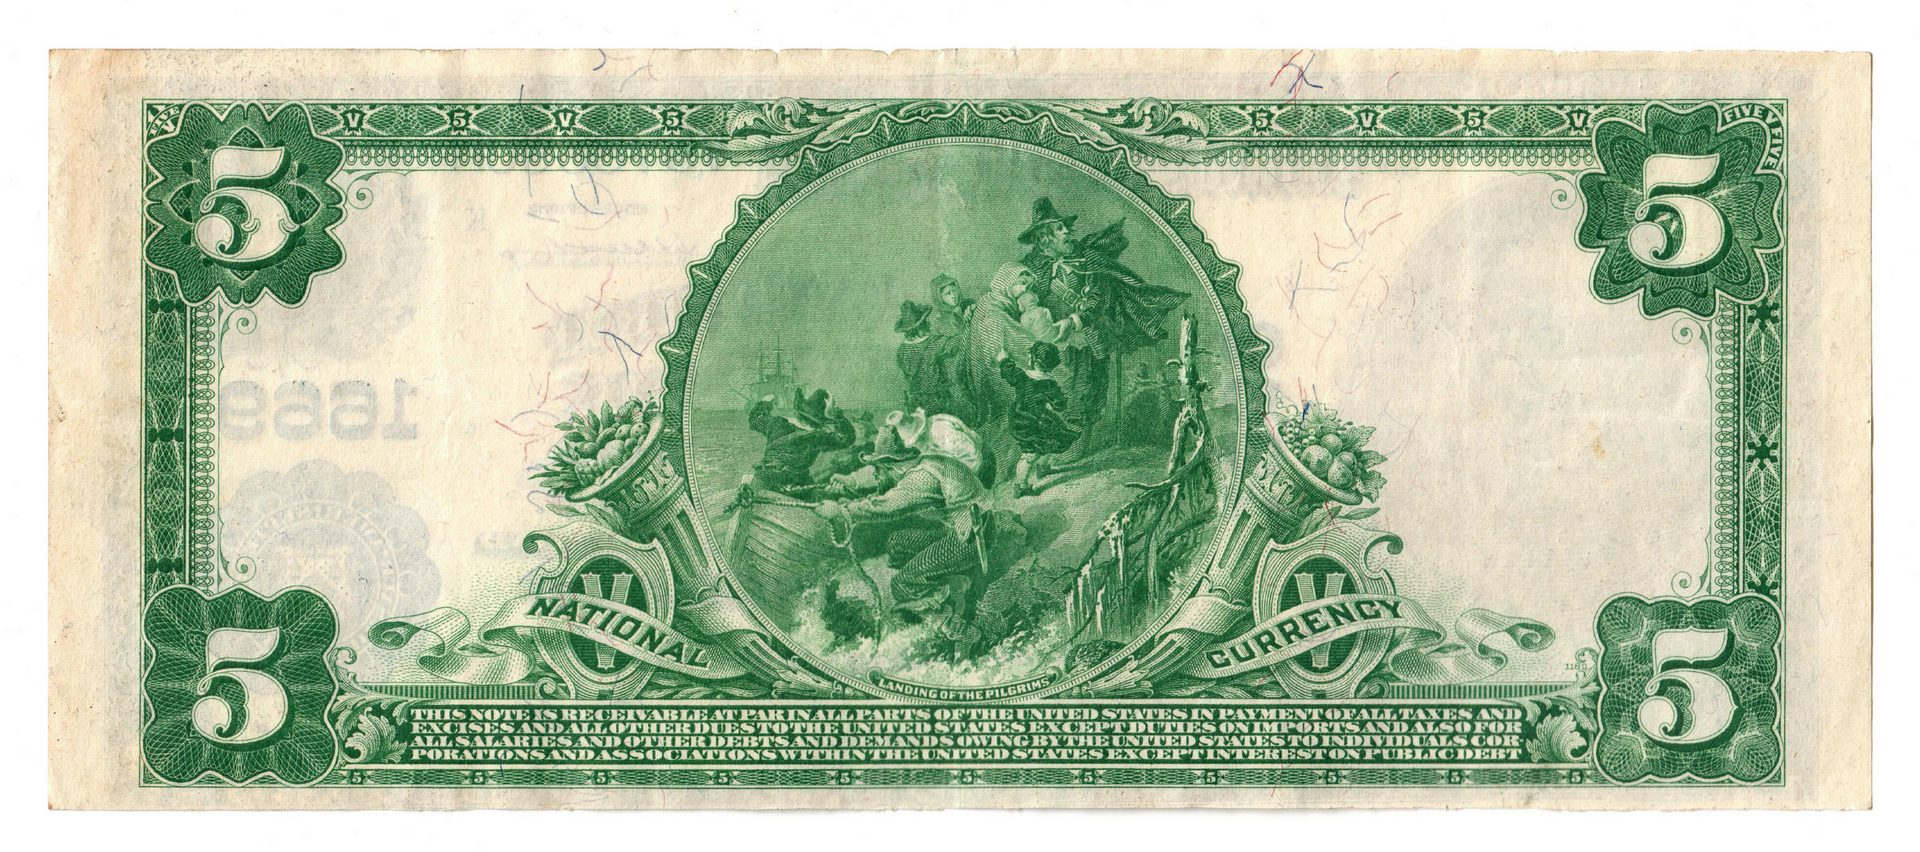 Lot 69: 1902 $5 Fourth and First National Bank, Nashville